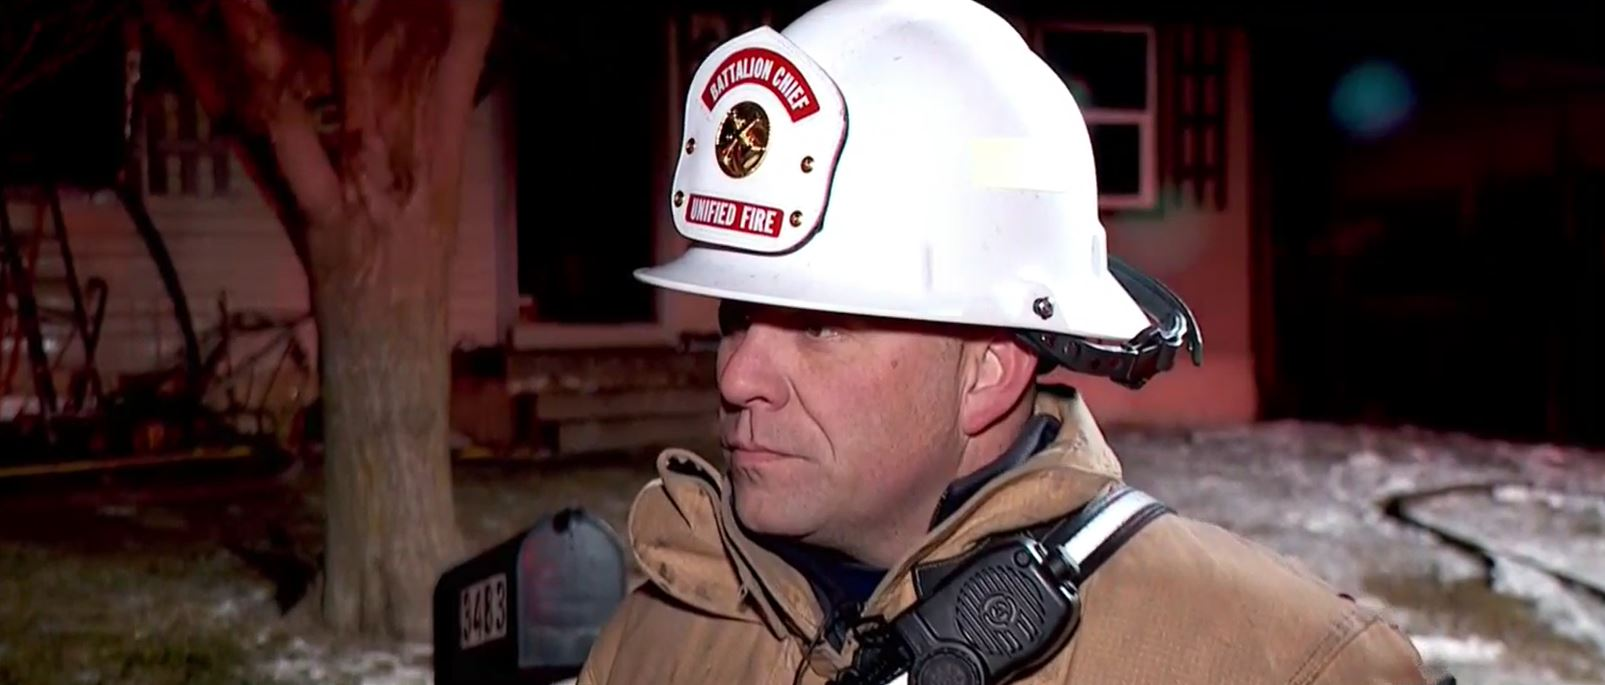 Taylorsville house fire kills 21-year-old man, pets. (Photo: KUTV)